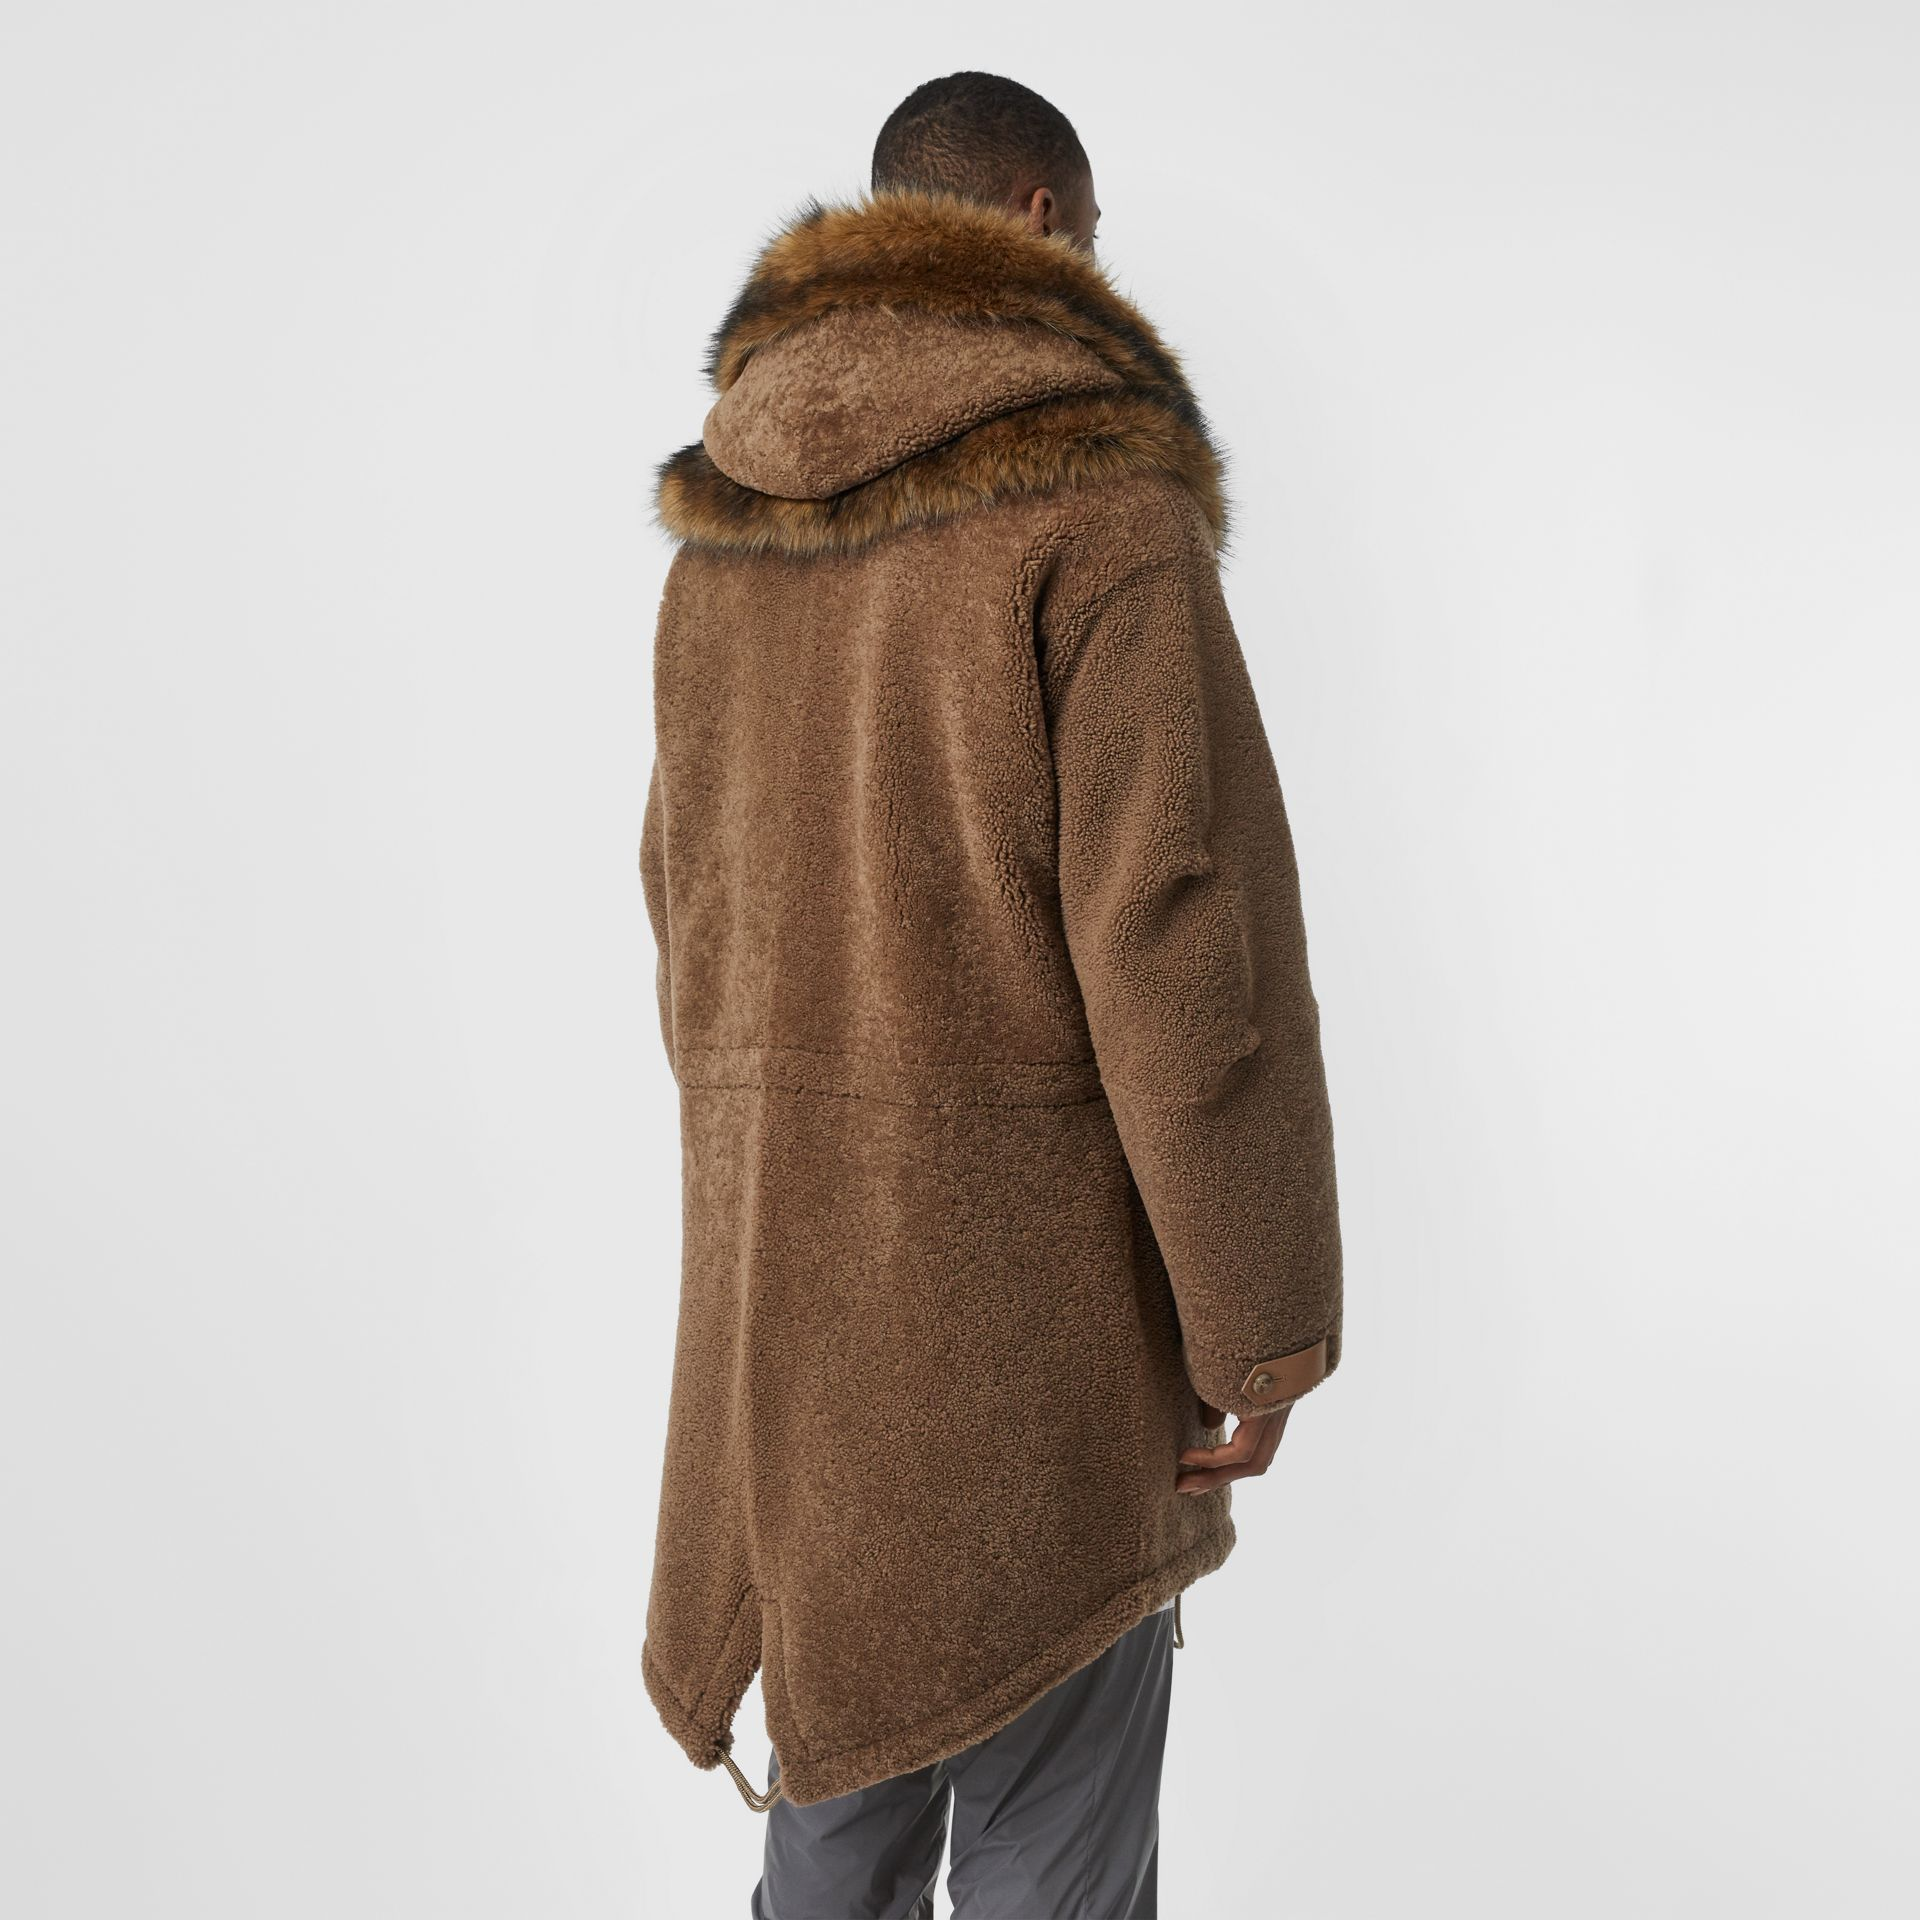 Shearling Parka with Detachable Hood and Jacket in Pale Coffee - Men | Burberry Australia - gallery image 1